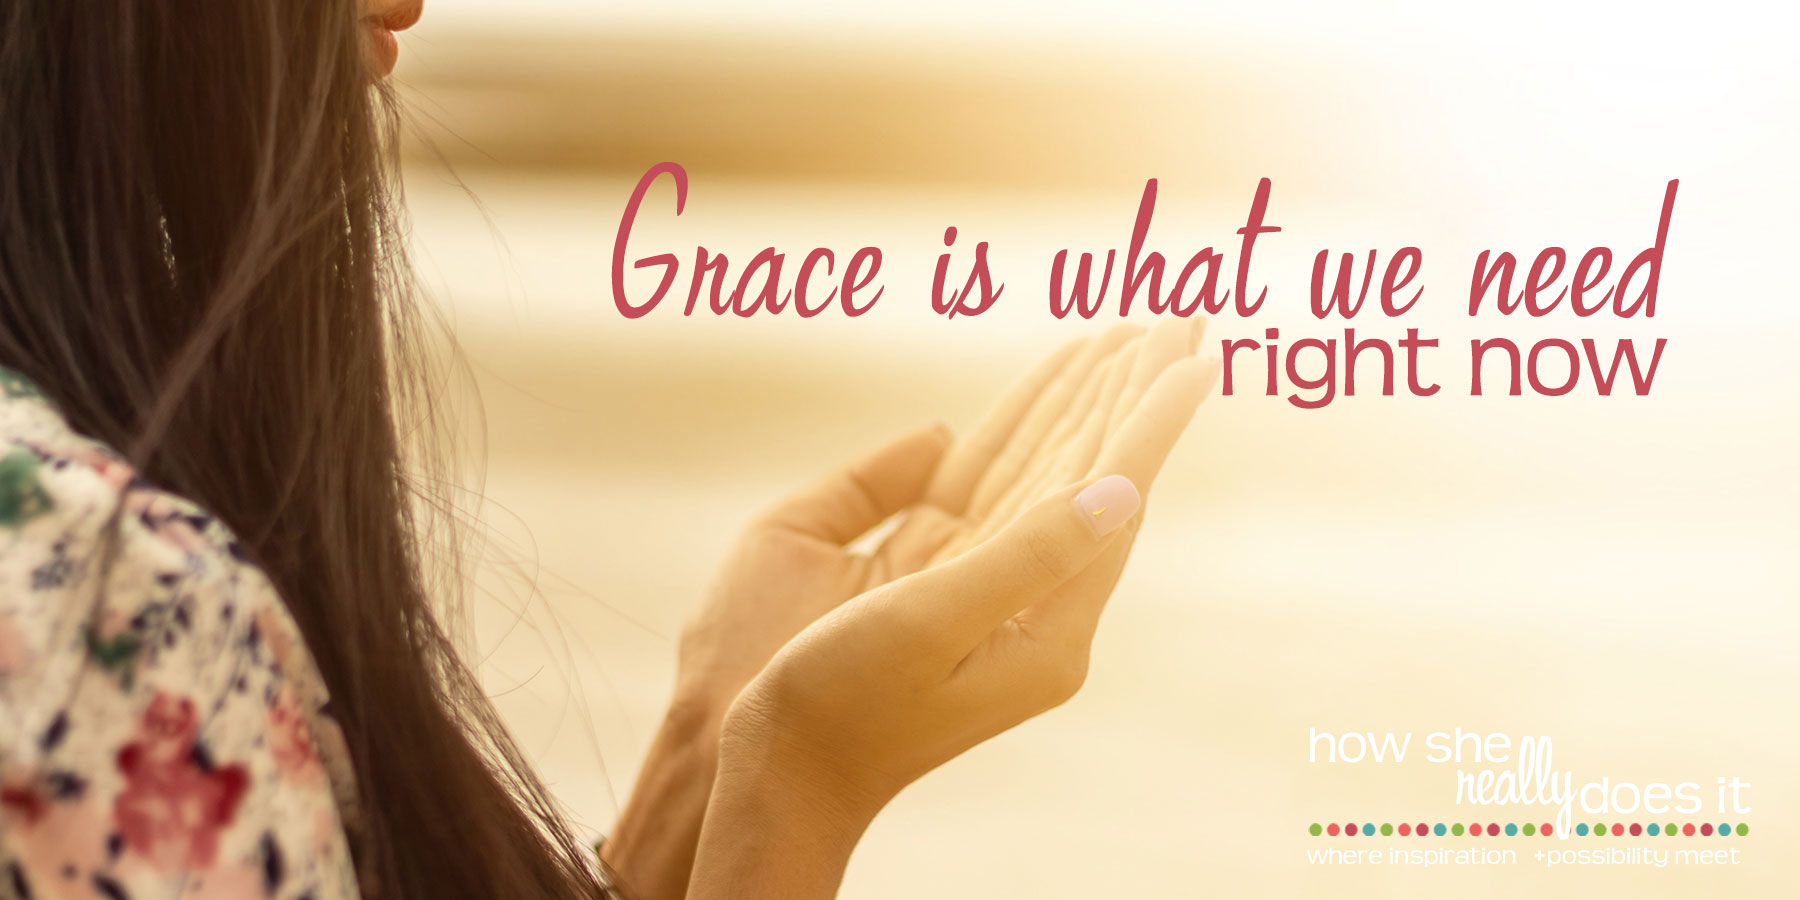 Grace is what we need right now